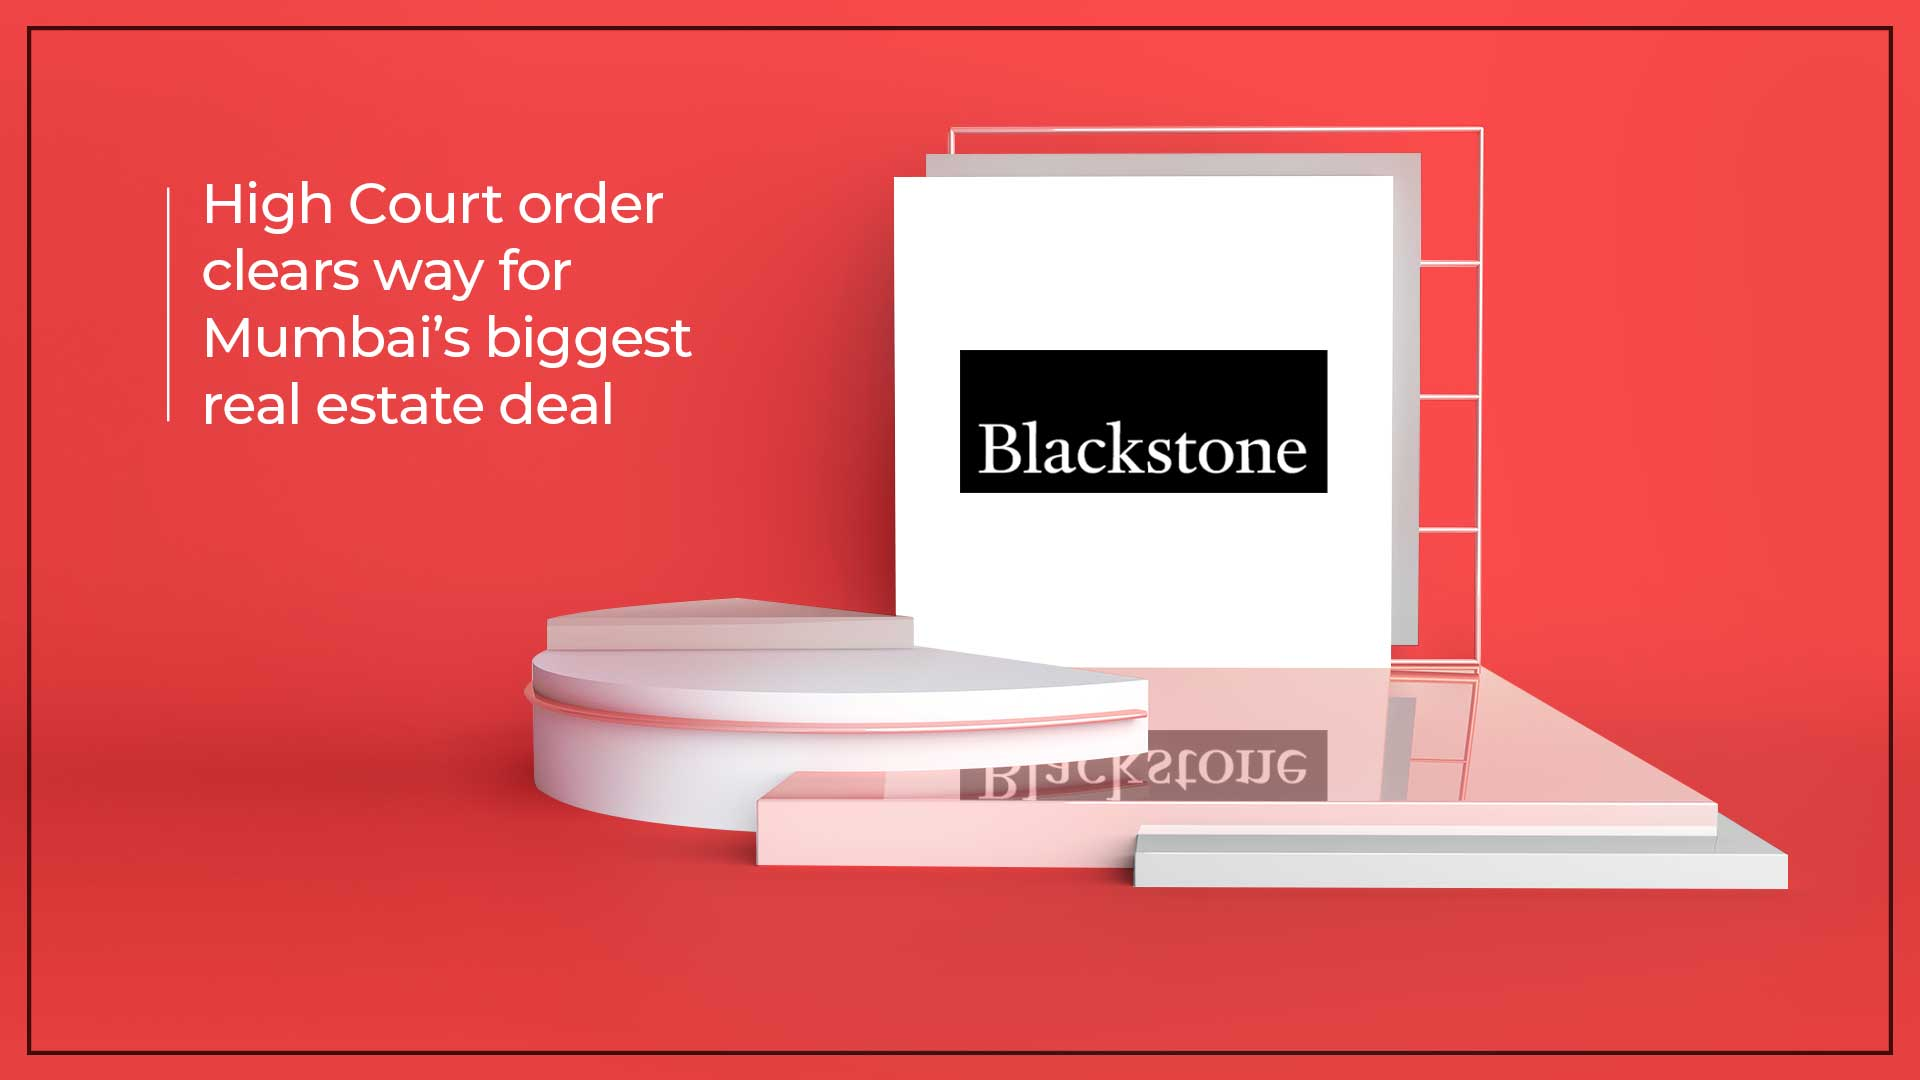 Blackstone Buys Stake In BKC Tower For Rs 2,500 Crore